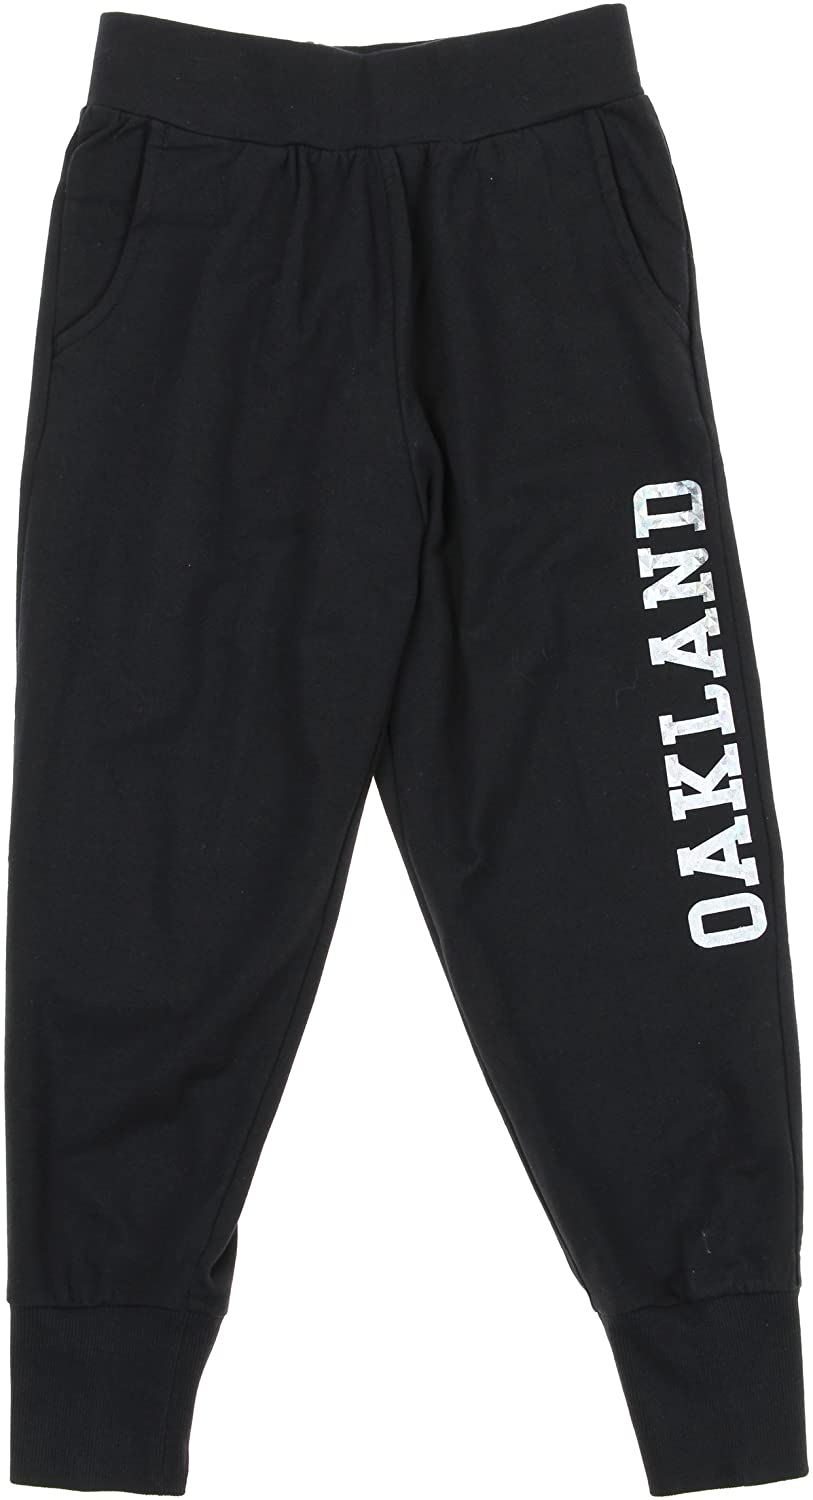 Outerstuff NFL Youth Girl's Athletic Diamond Cut Joggers, Multiple Teams